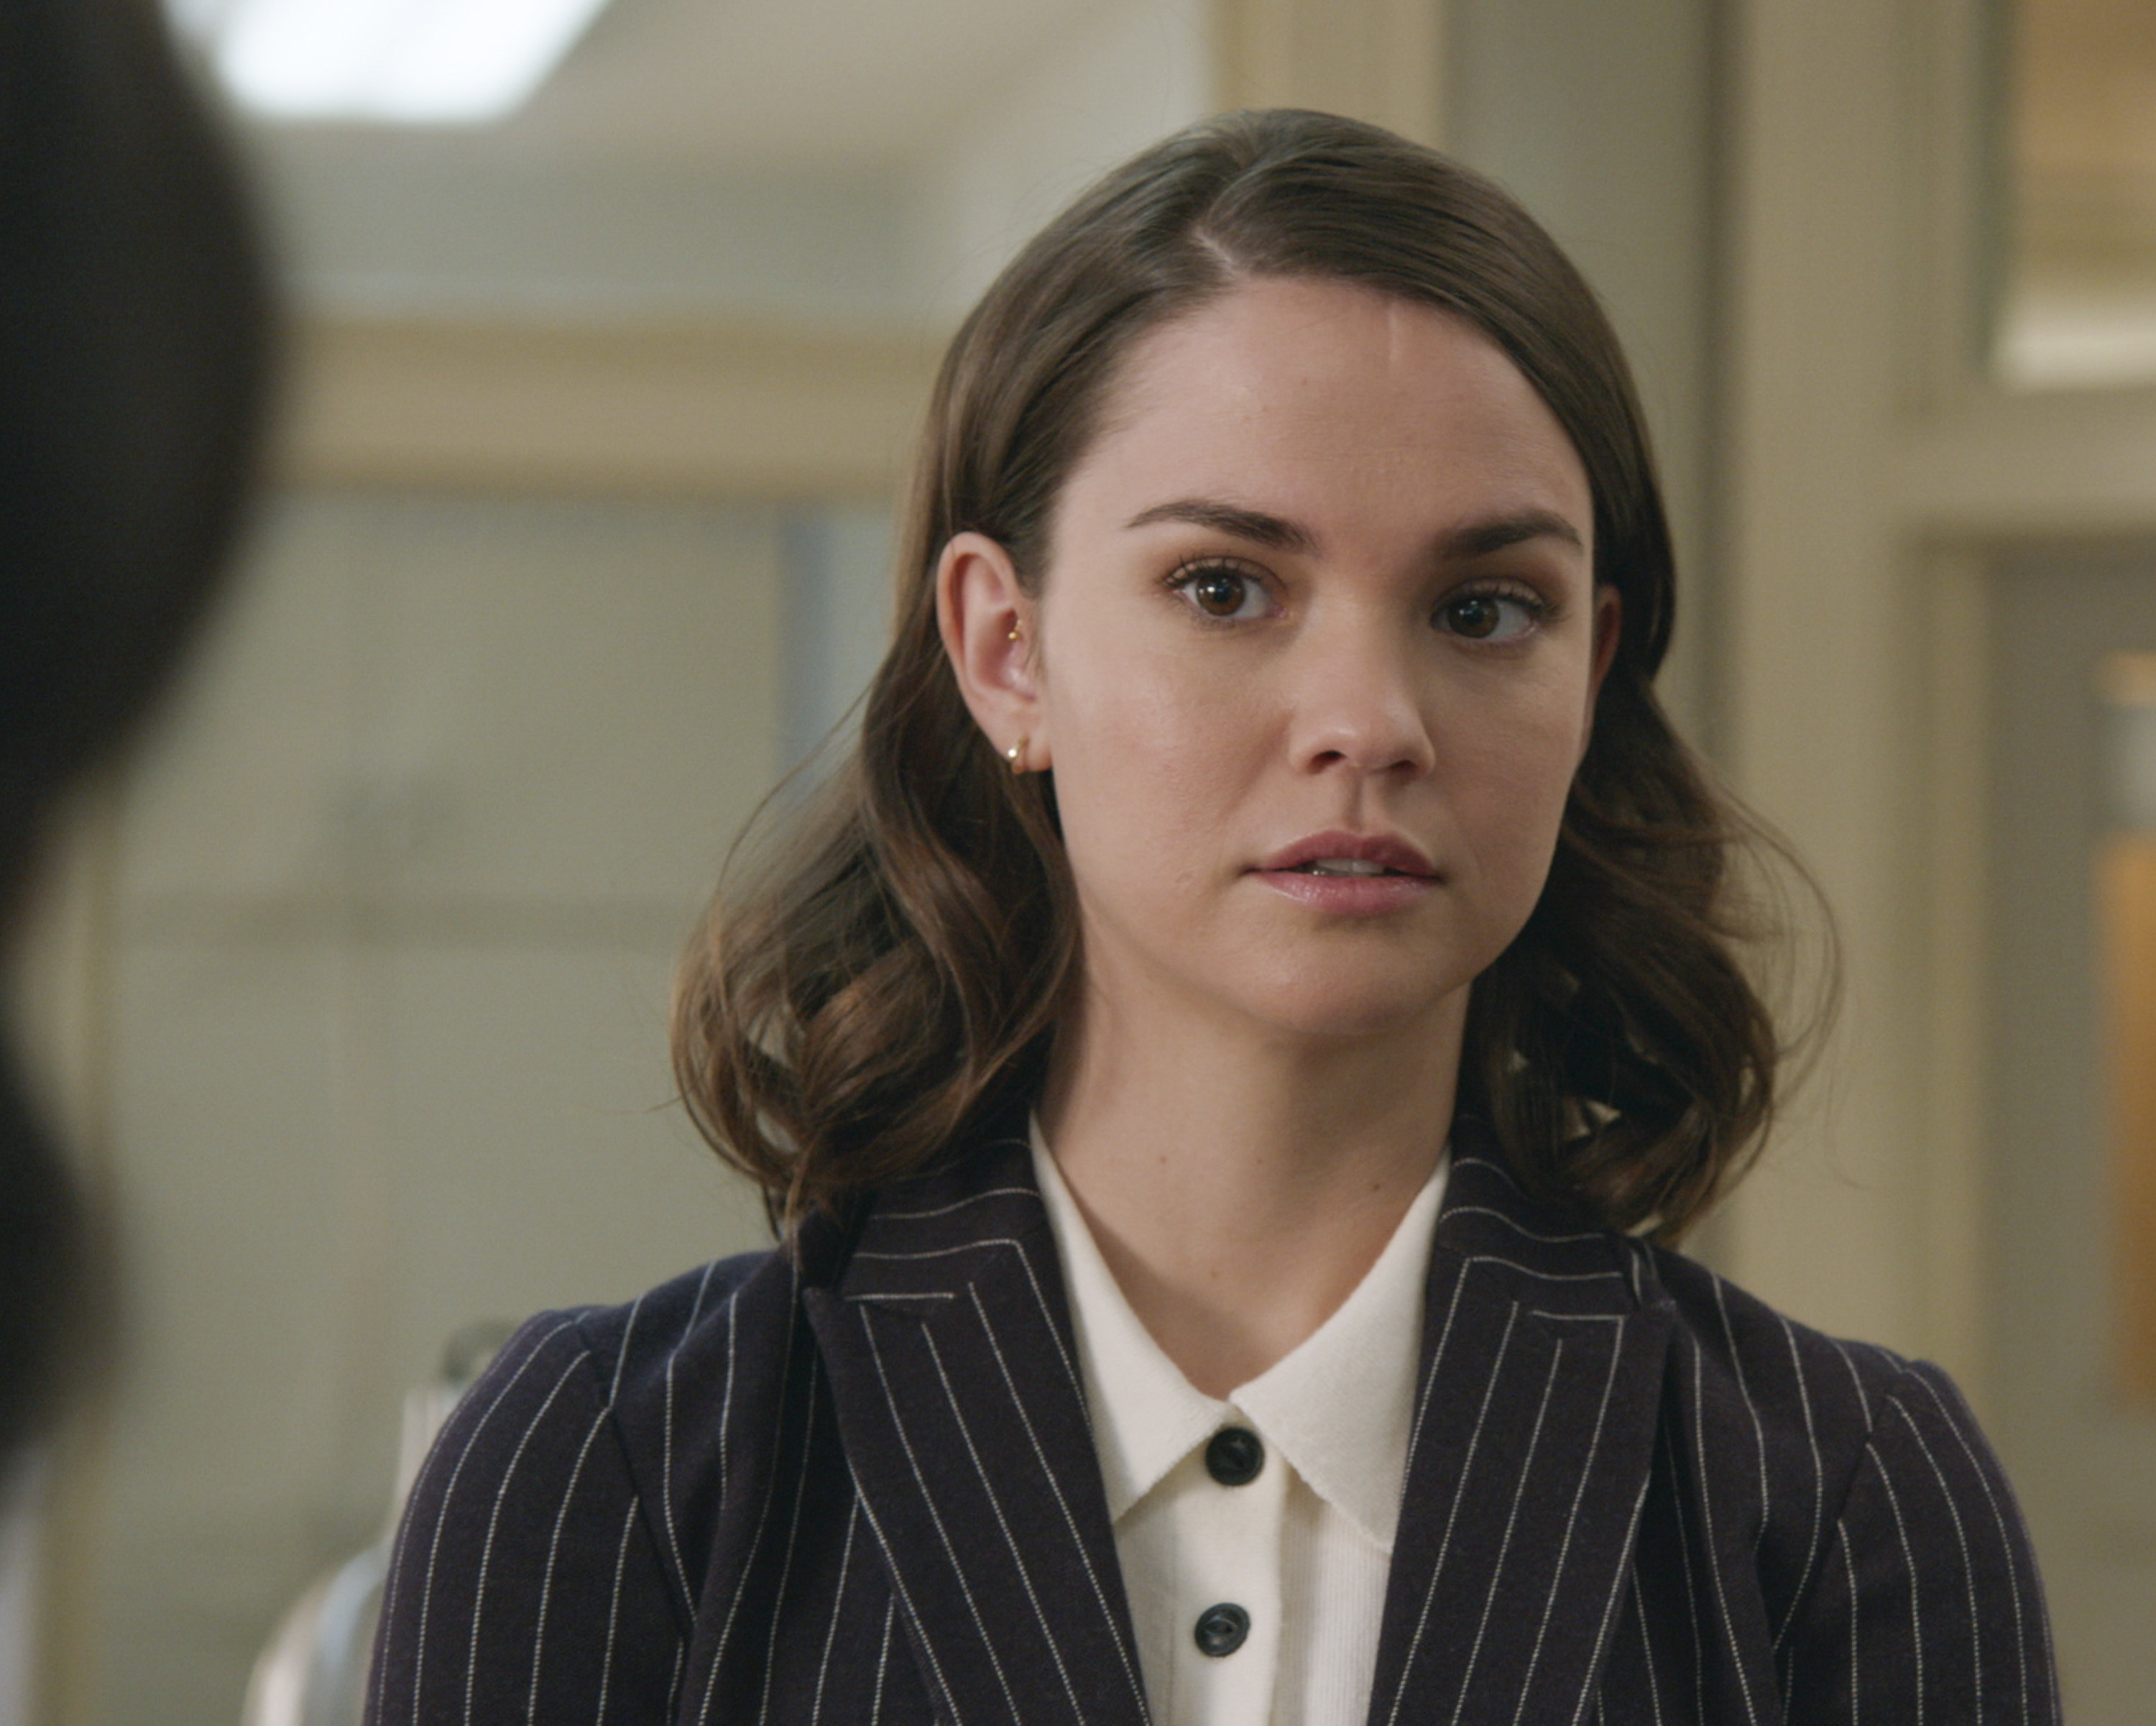 Maia Mitchell as Callie Foster